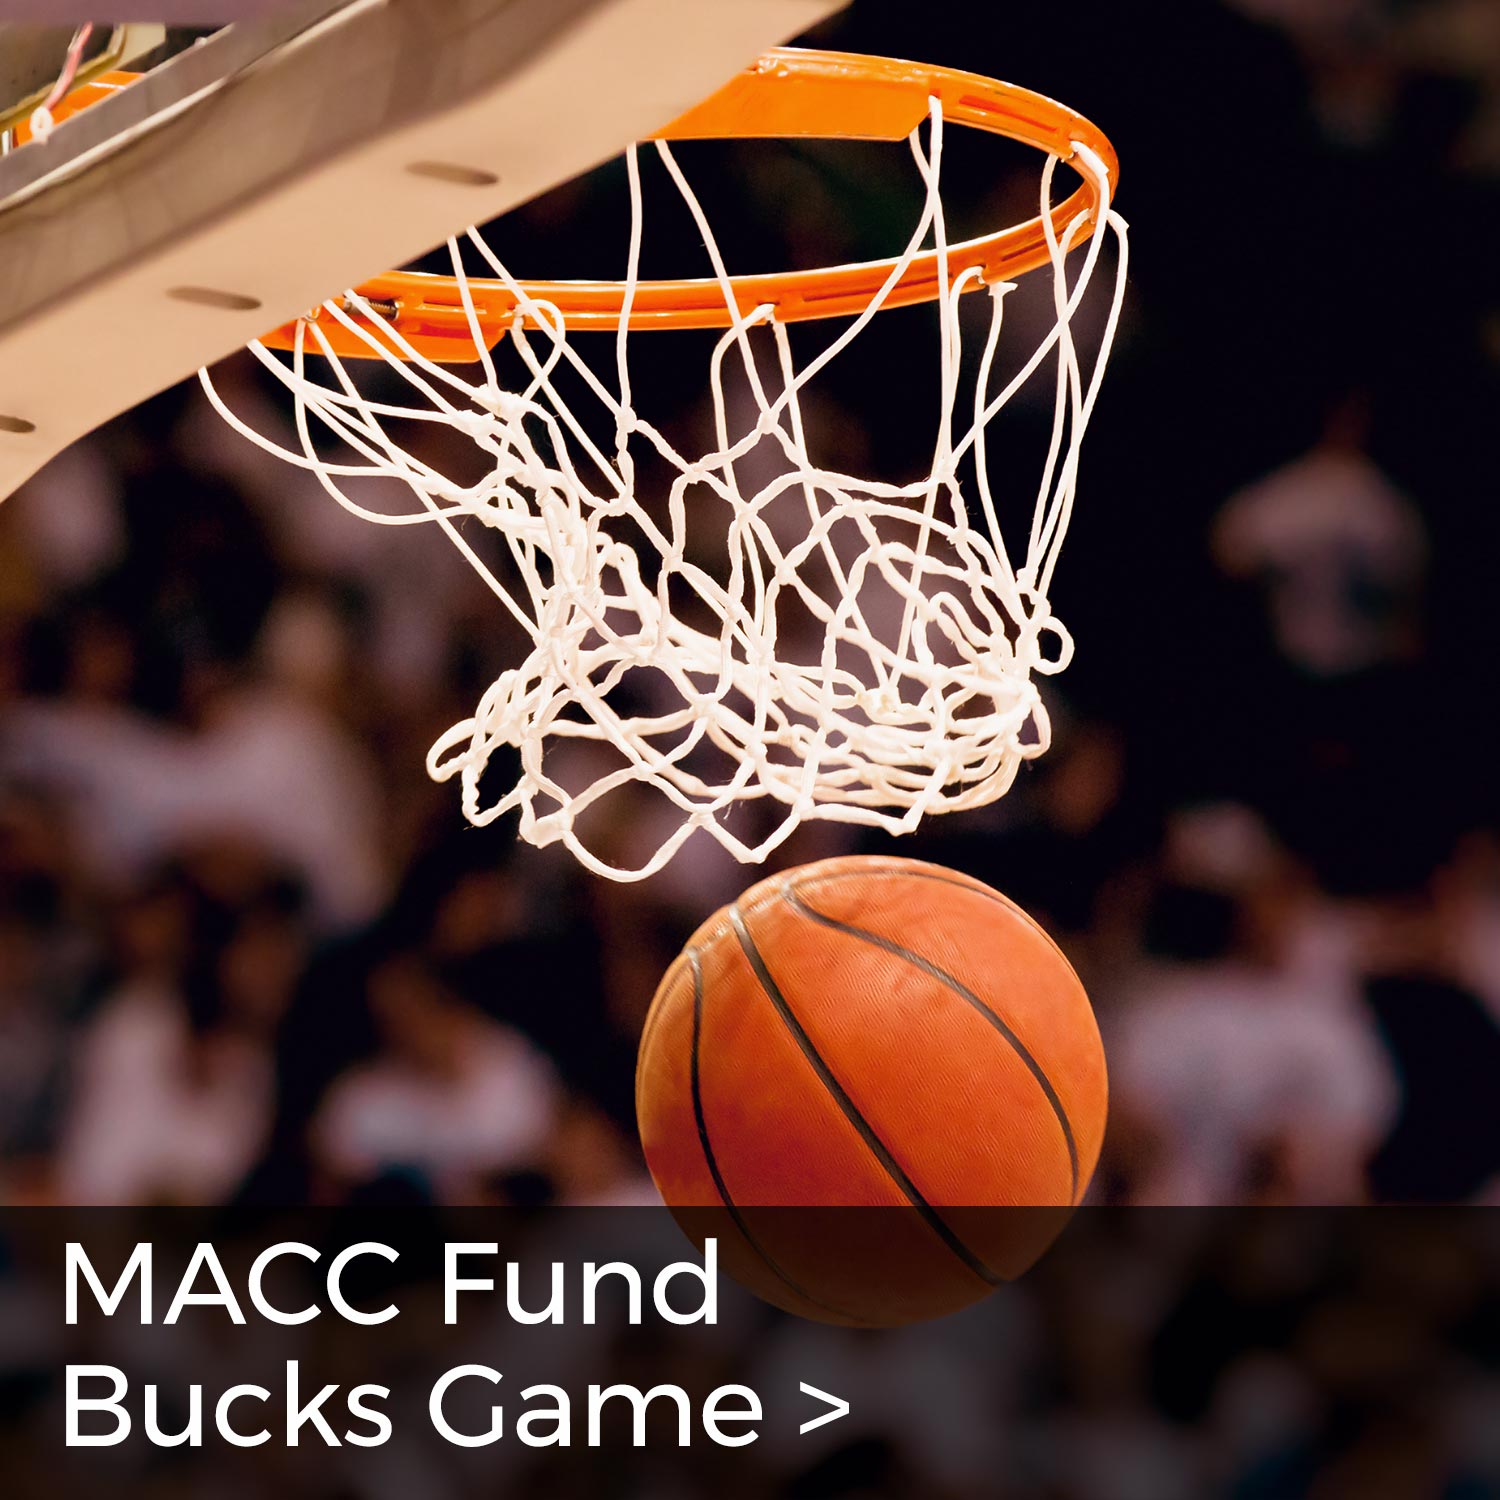 MACC Fund Bucks Game